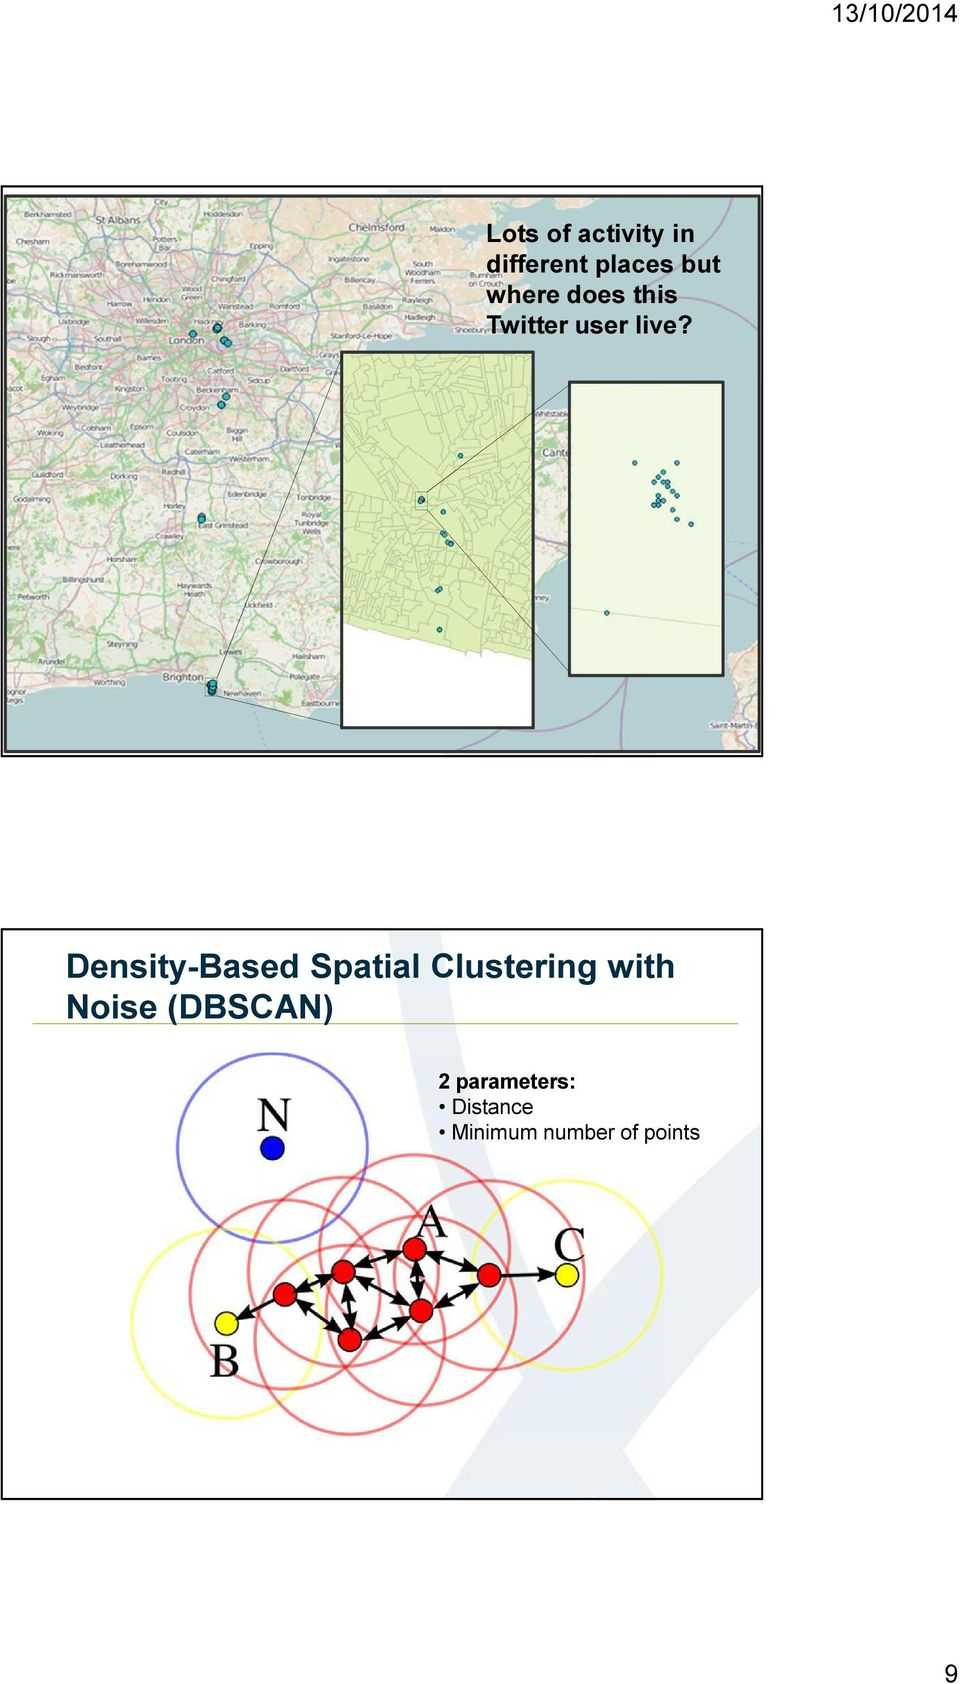 Density-Based Spatial Clustering with Noise